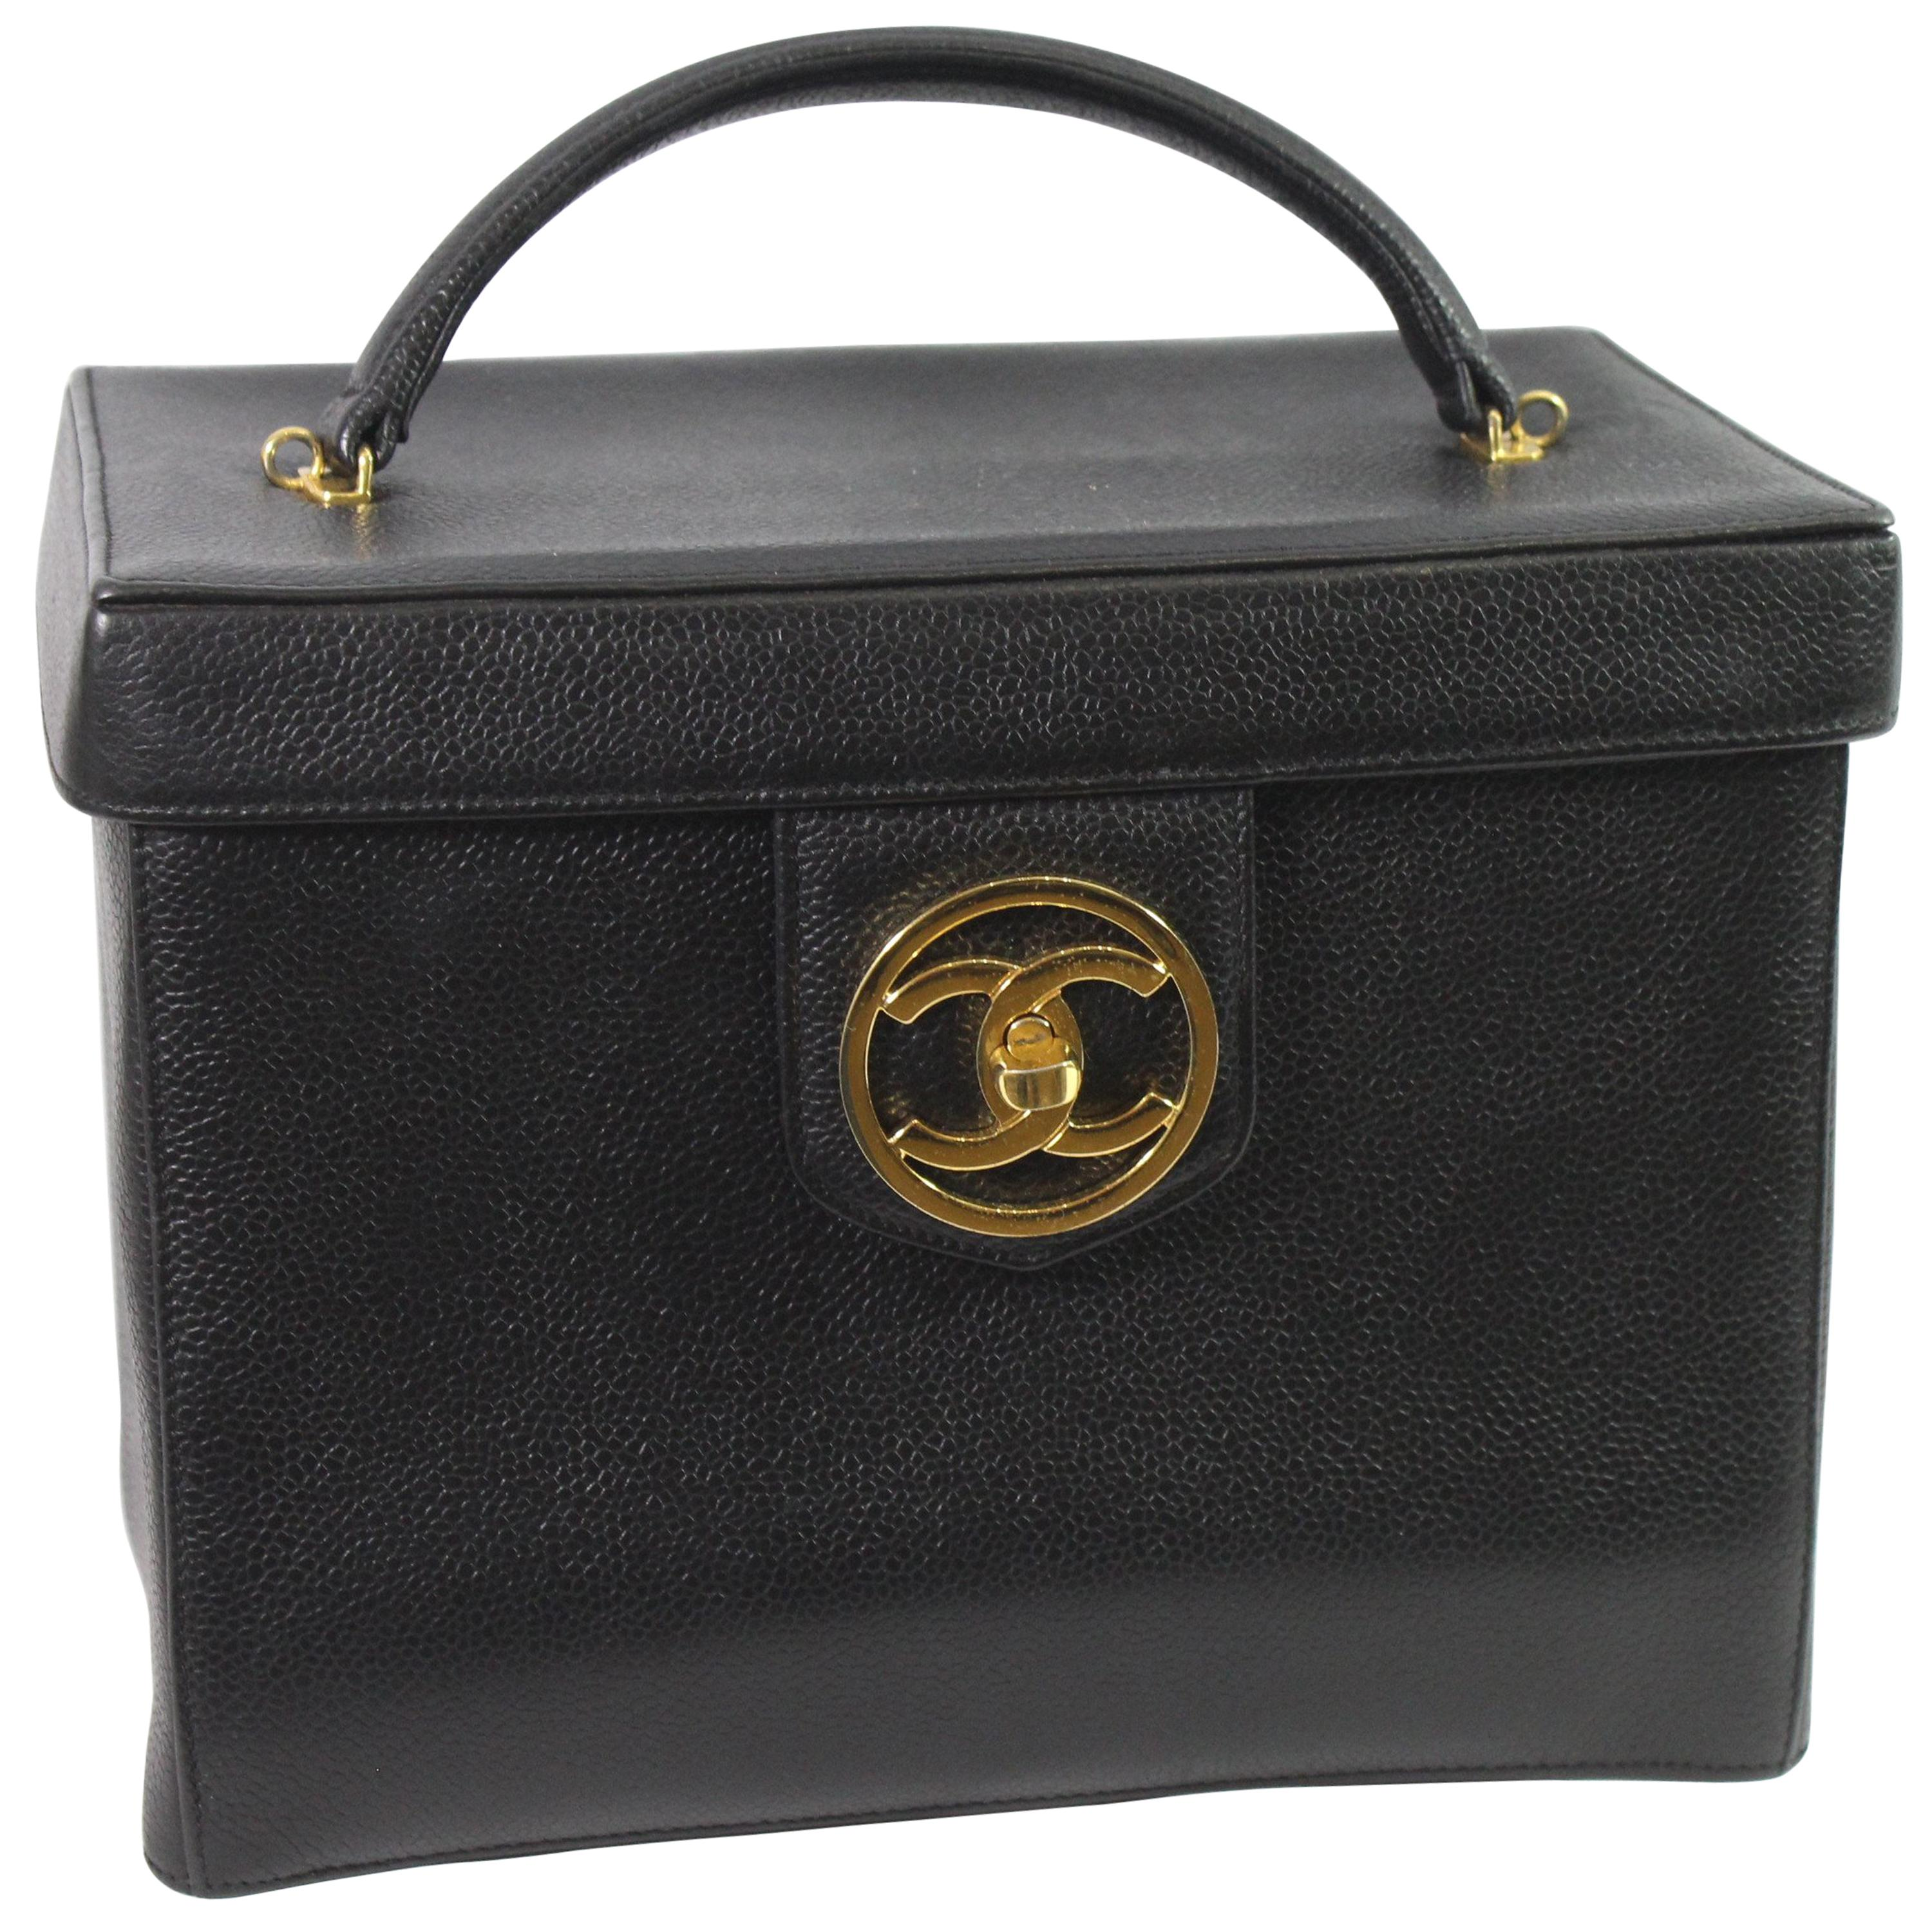 d5f16186722691 Chanel Vintage Rigide Vanity Case 90s Caviar Leather For Sale at 1stdibs